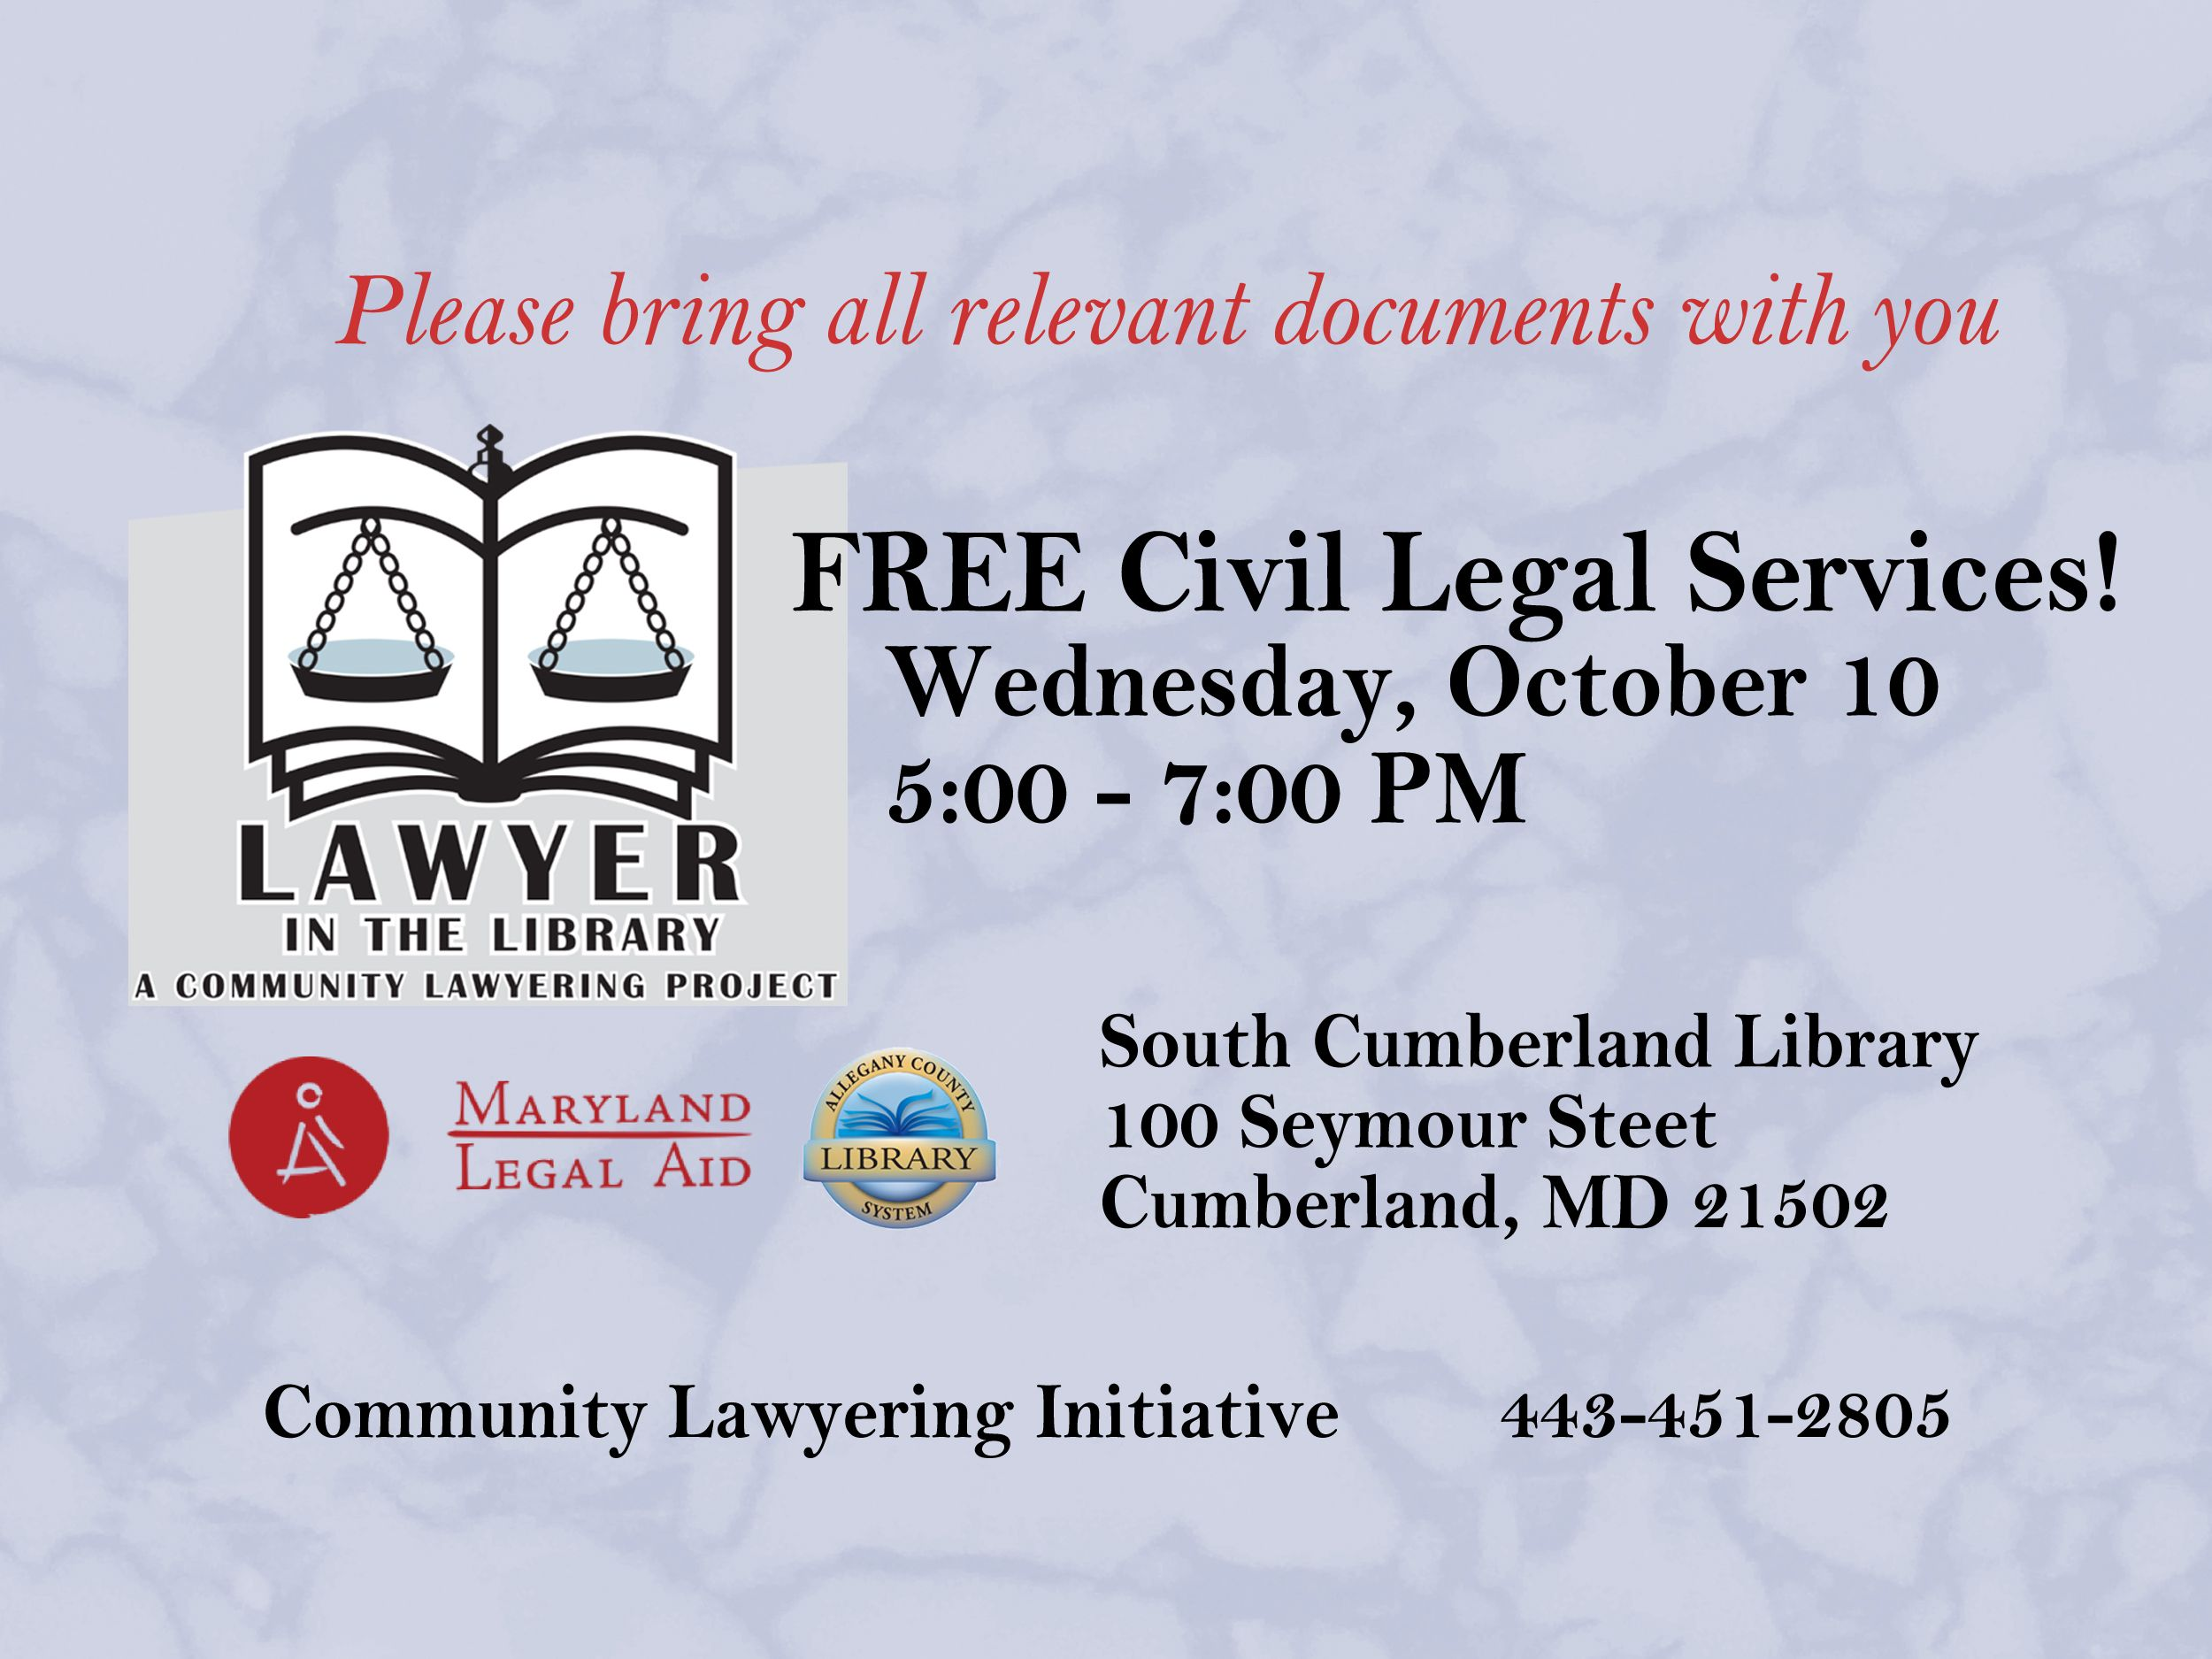 This project provides FREE civil legal services in your